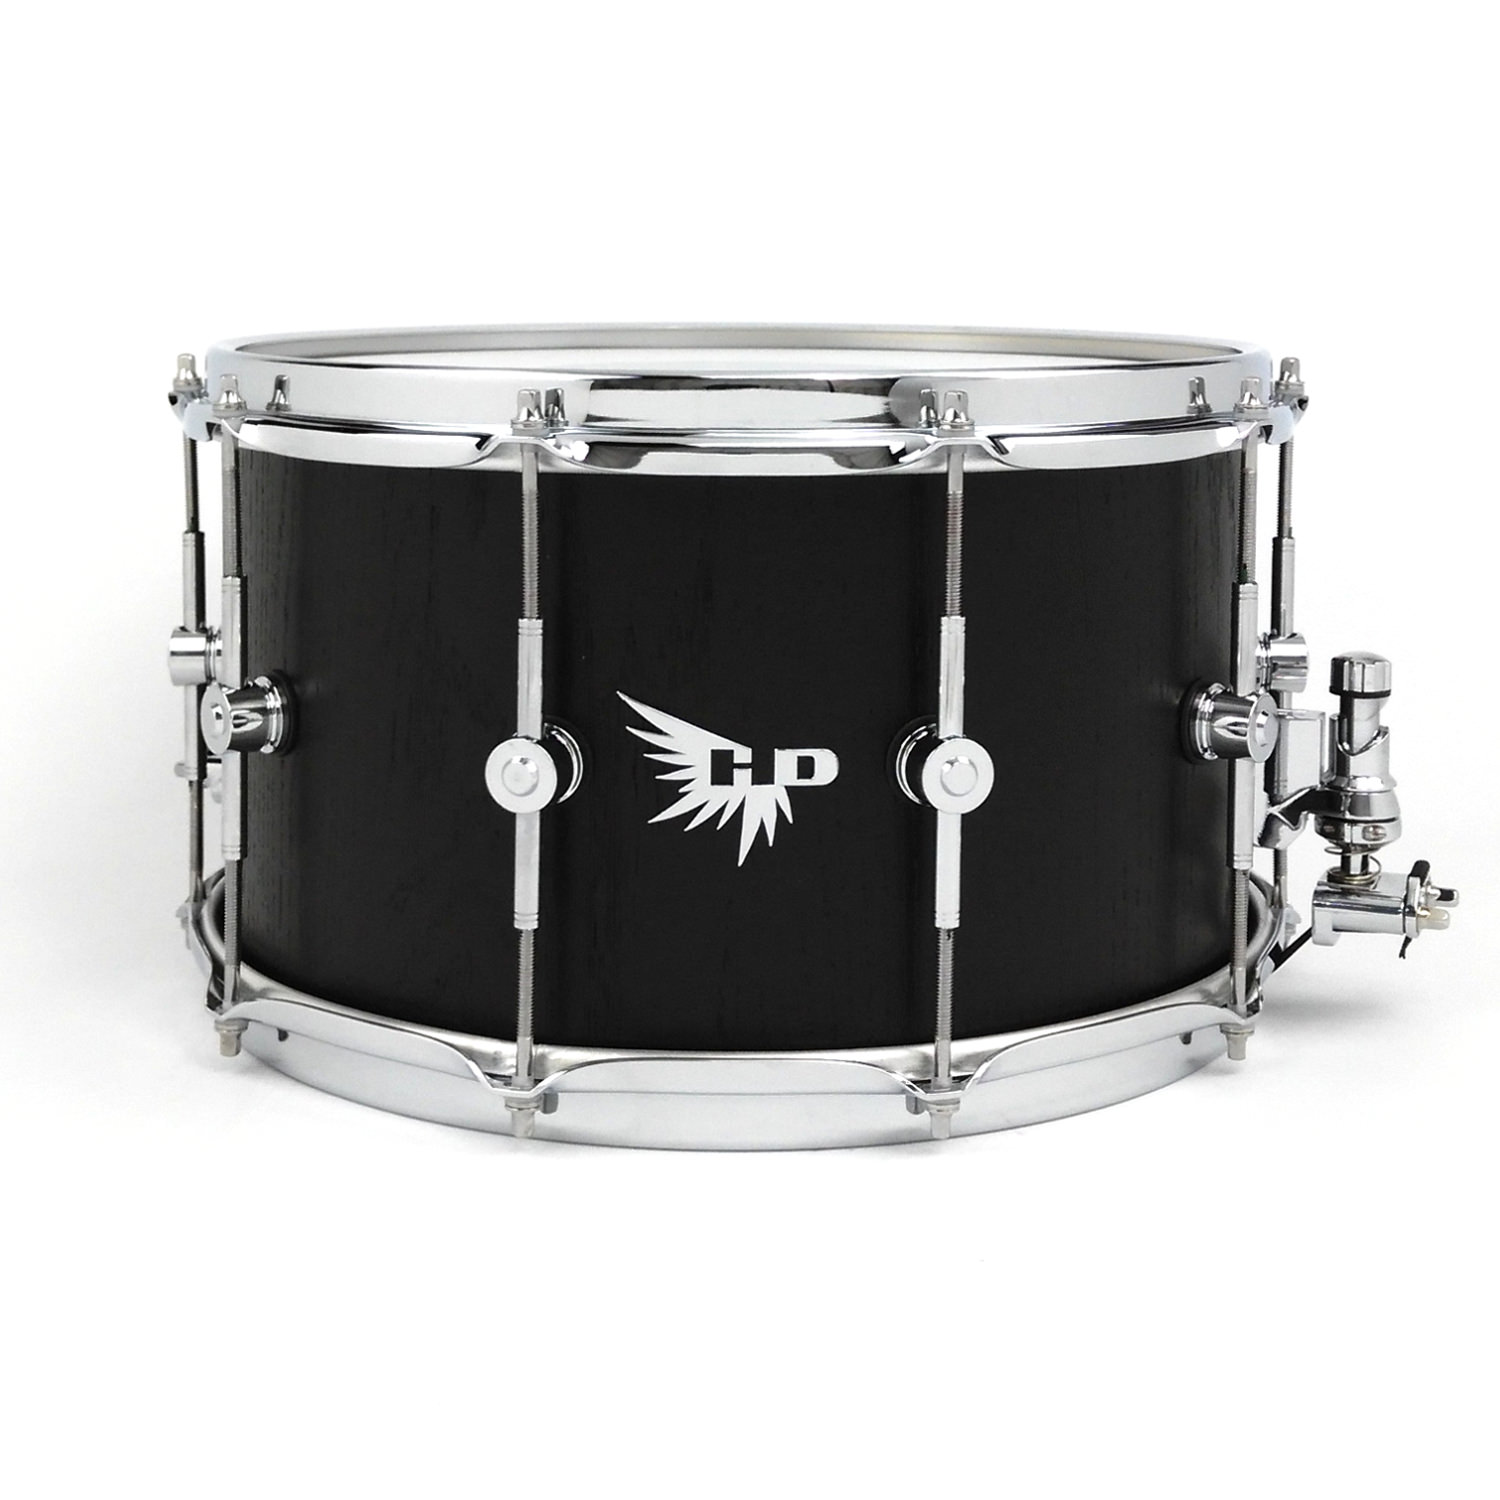 Hendrix Drums Stave Snare Drum Oak Black Best Snare Drum DW Tama